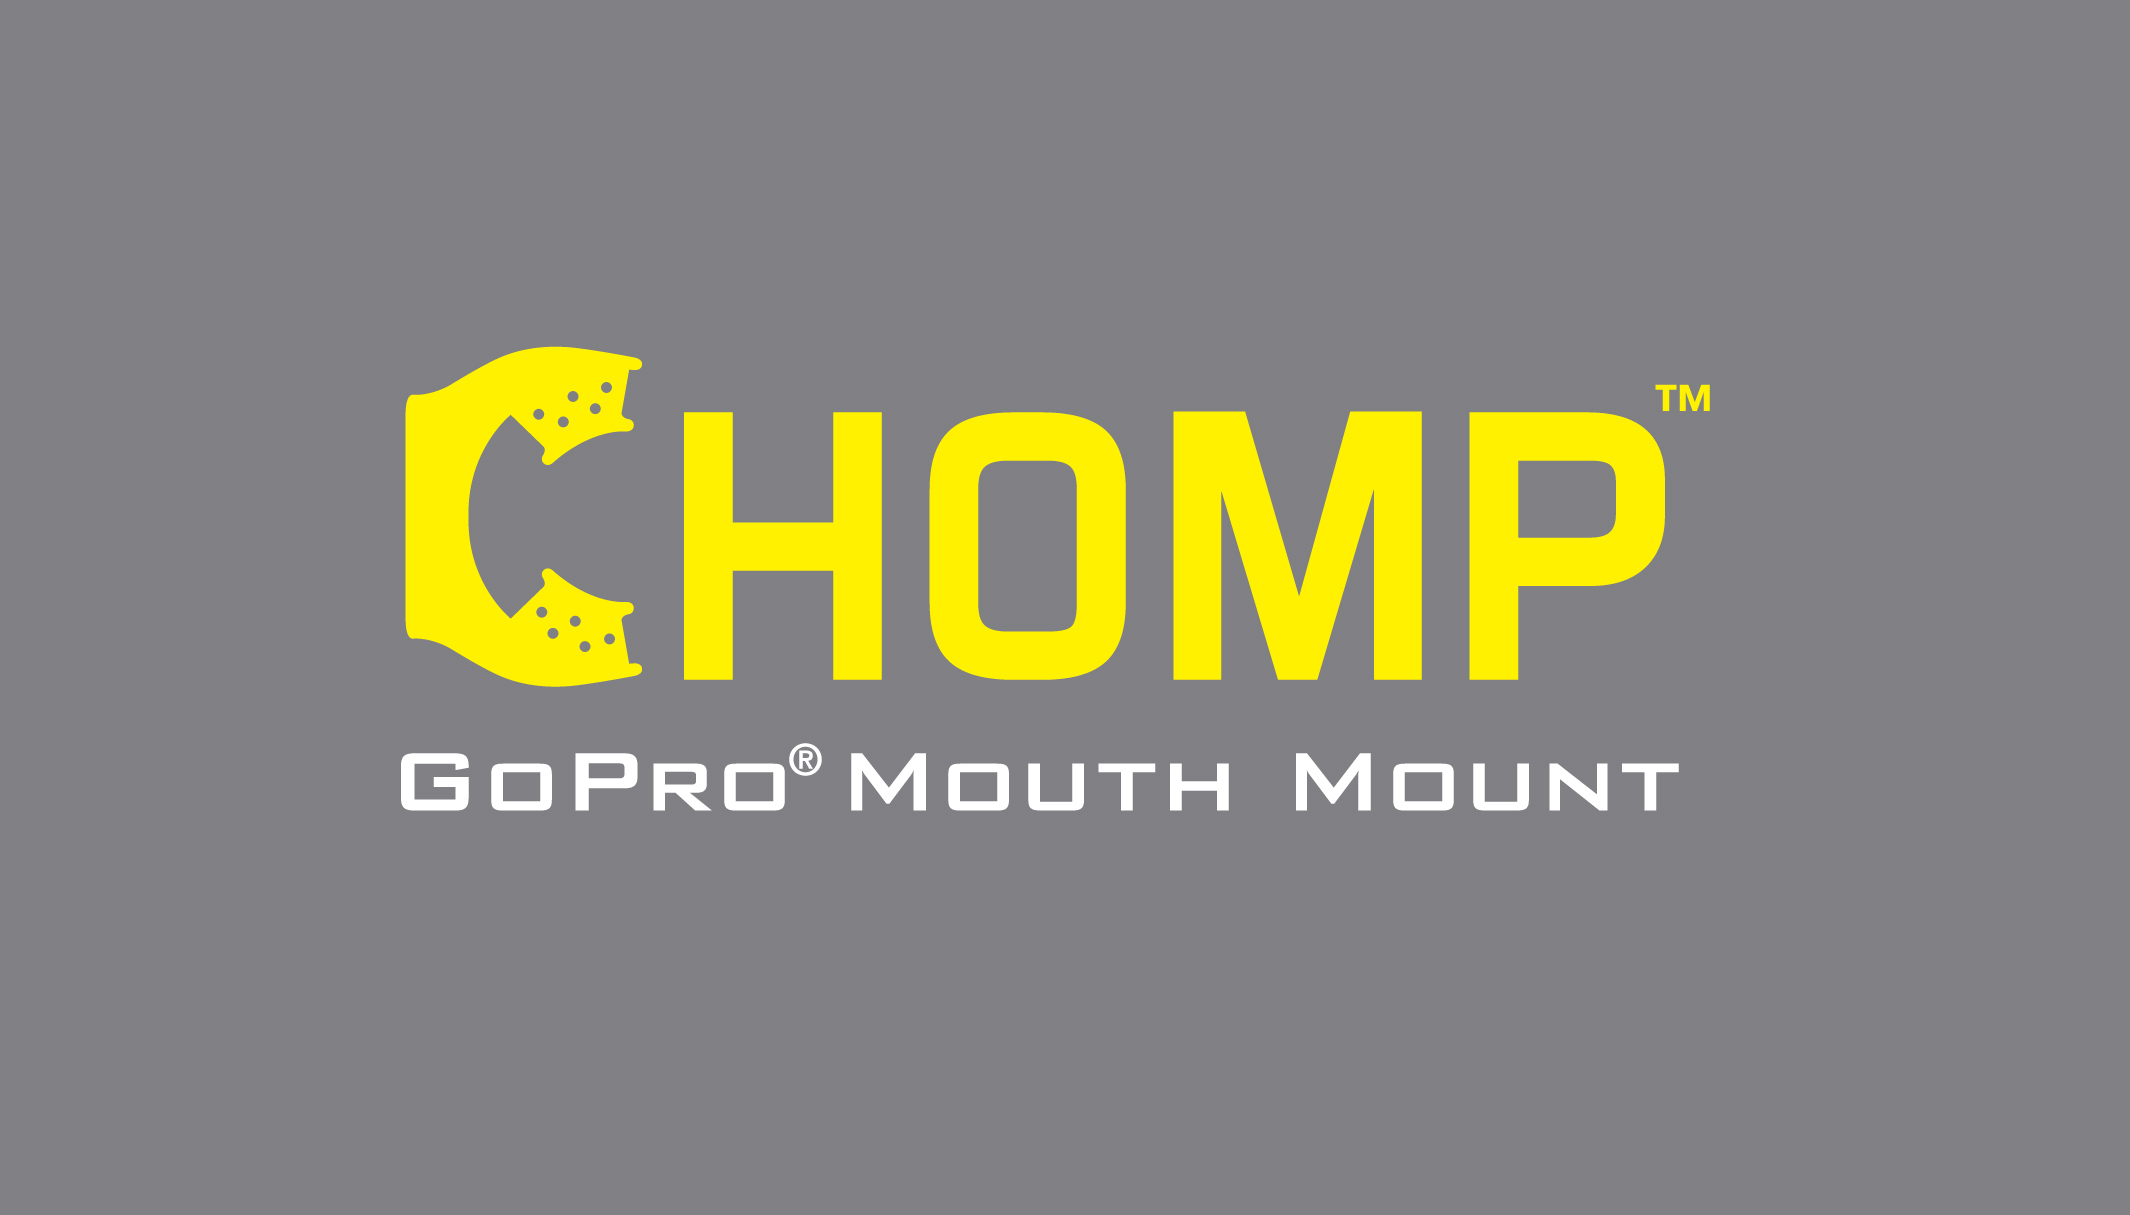 Chomp gopro mouth grip